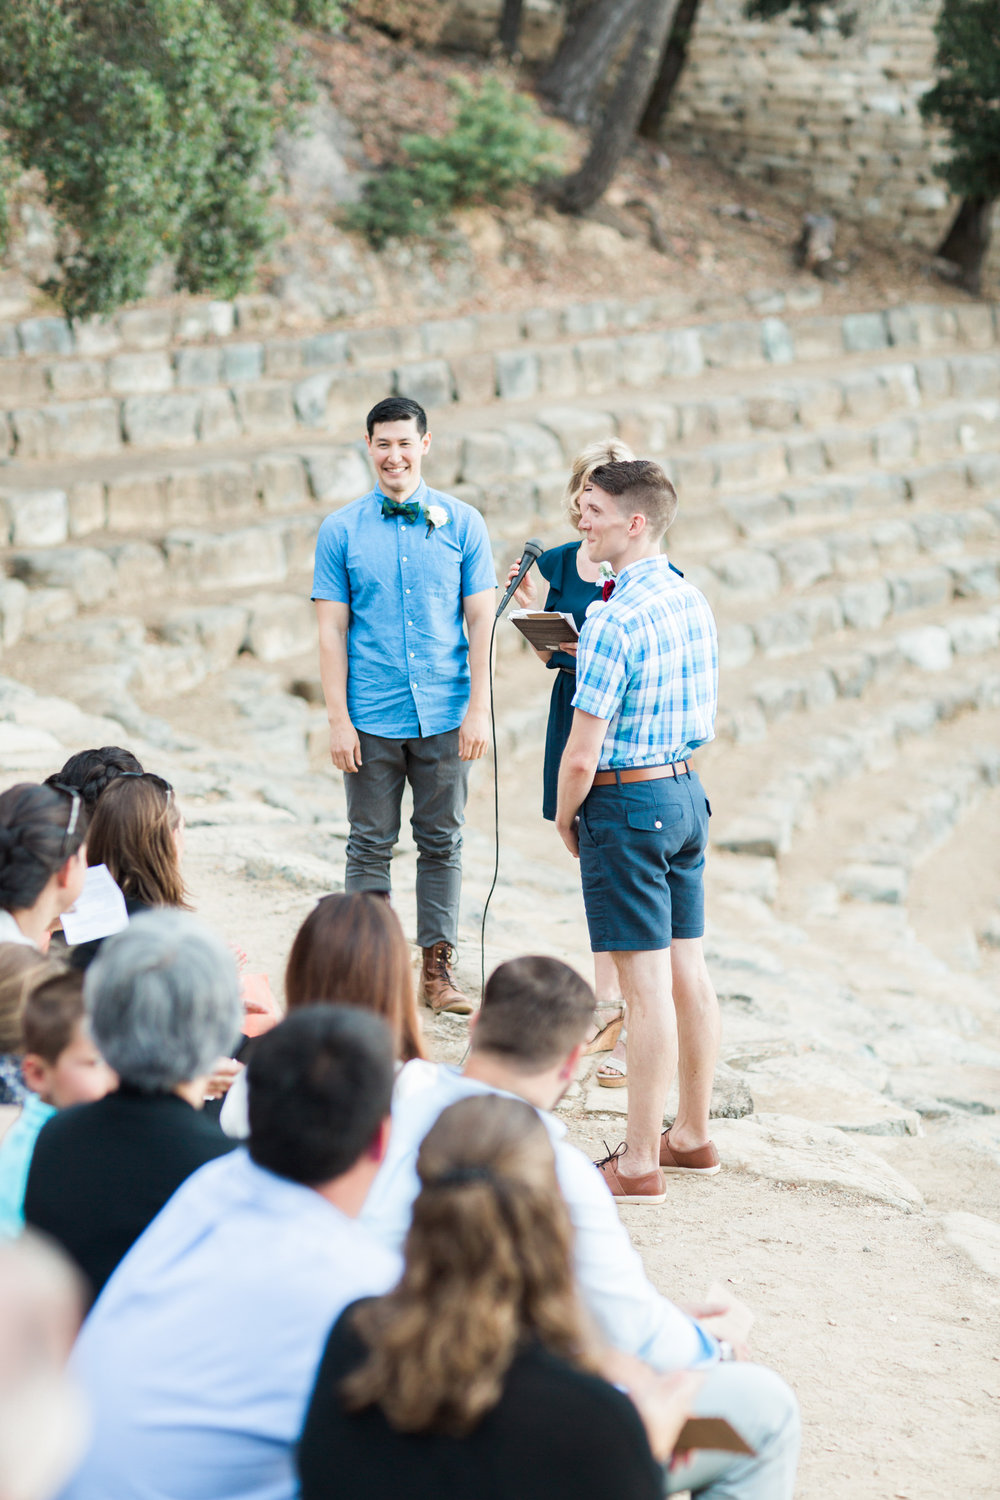 Wedding ceremony at the amphitheater on Mount Tamalpais